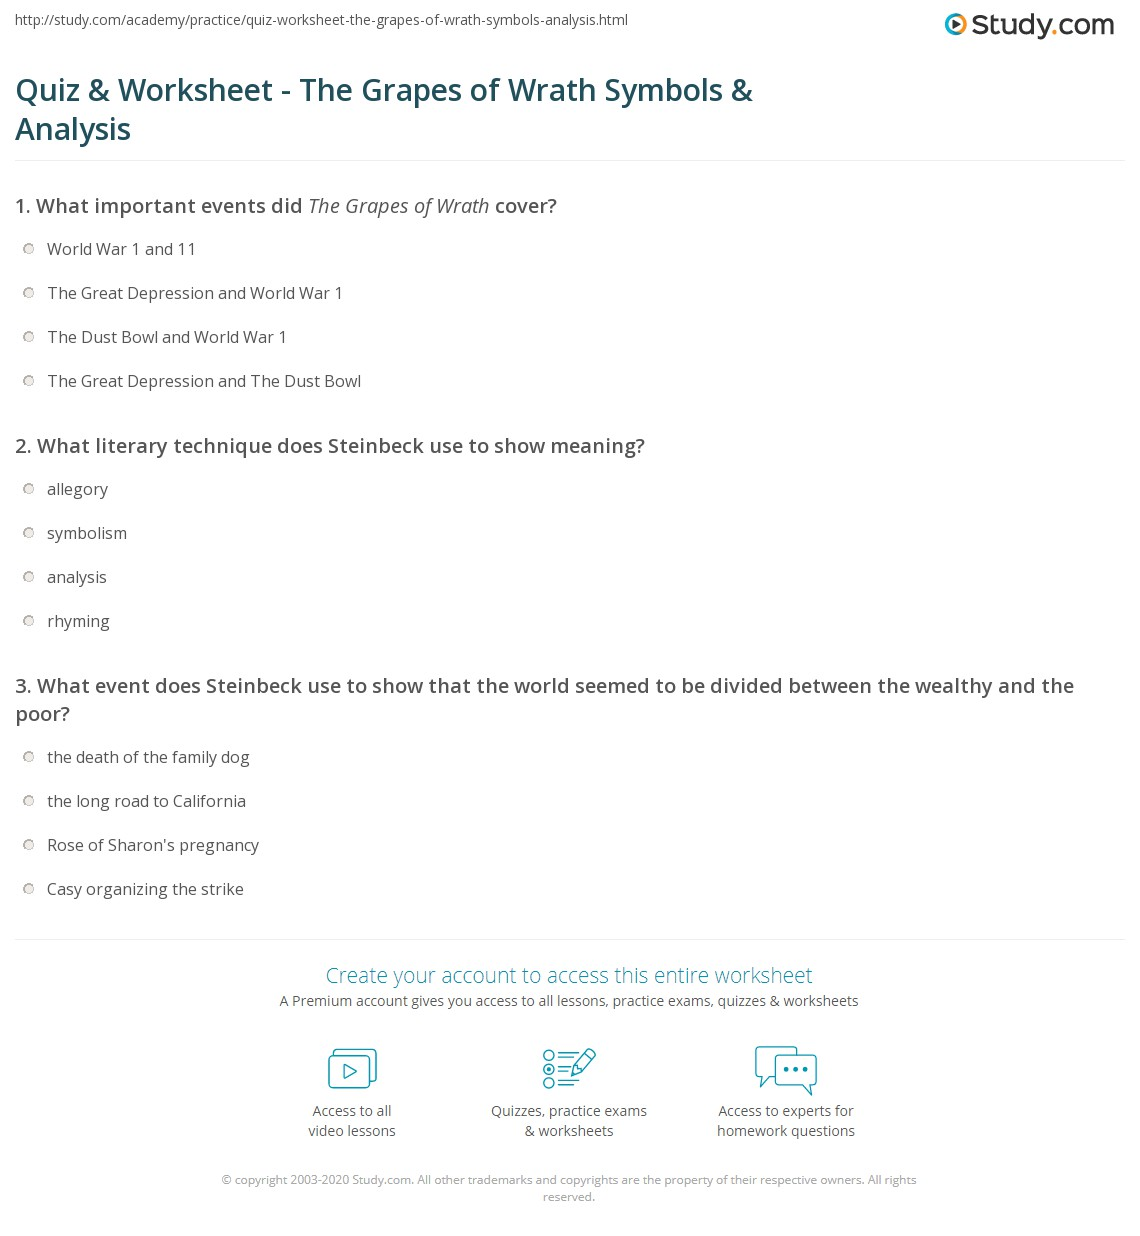 Quiz worksheet the grapes of wrath symbols analysis study print the grapes of wrath author symbols analysis worksheet biocorpaavc Image collections